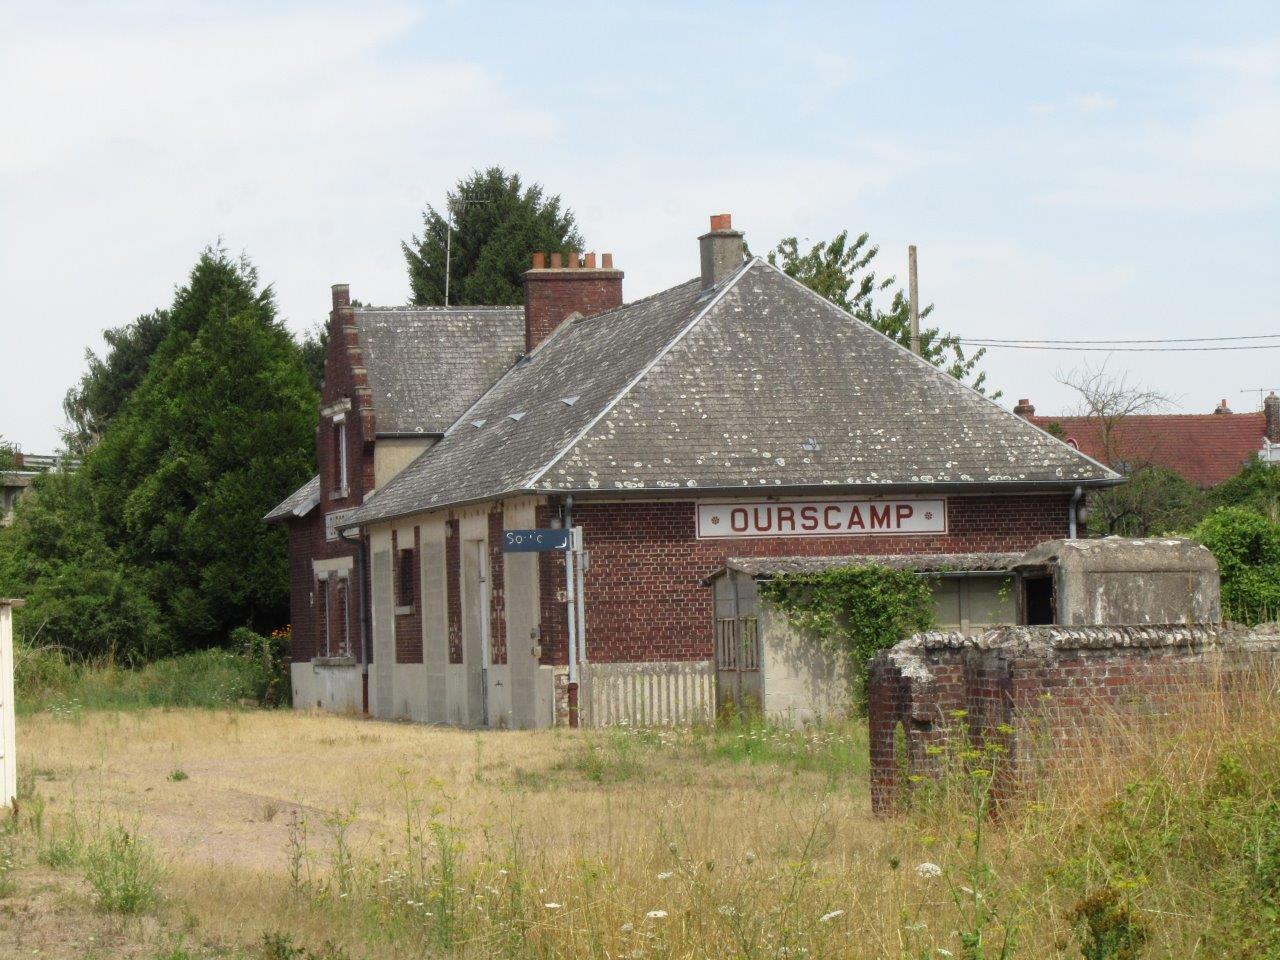 gare-d-ourscamps-train-station